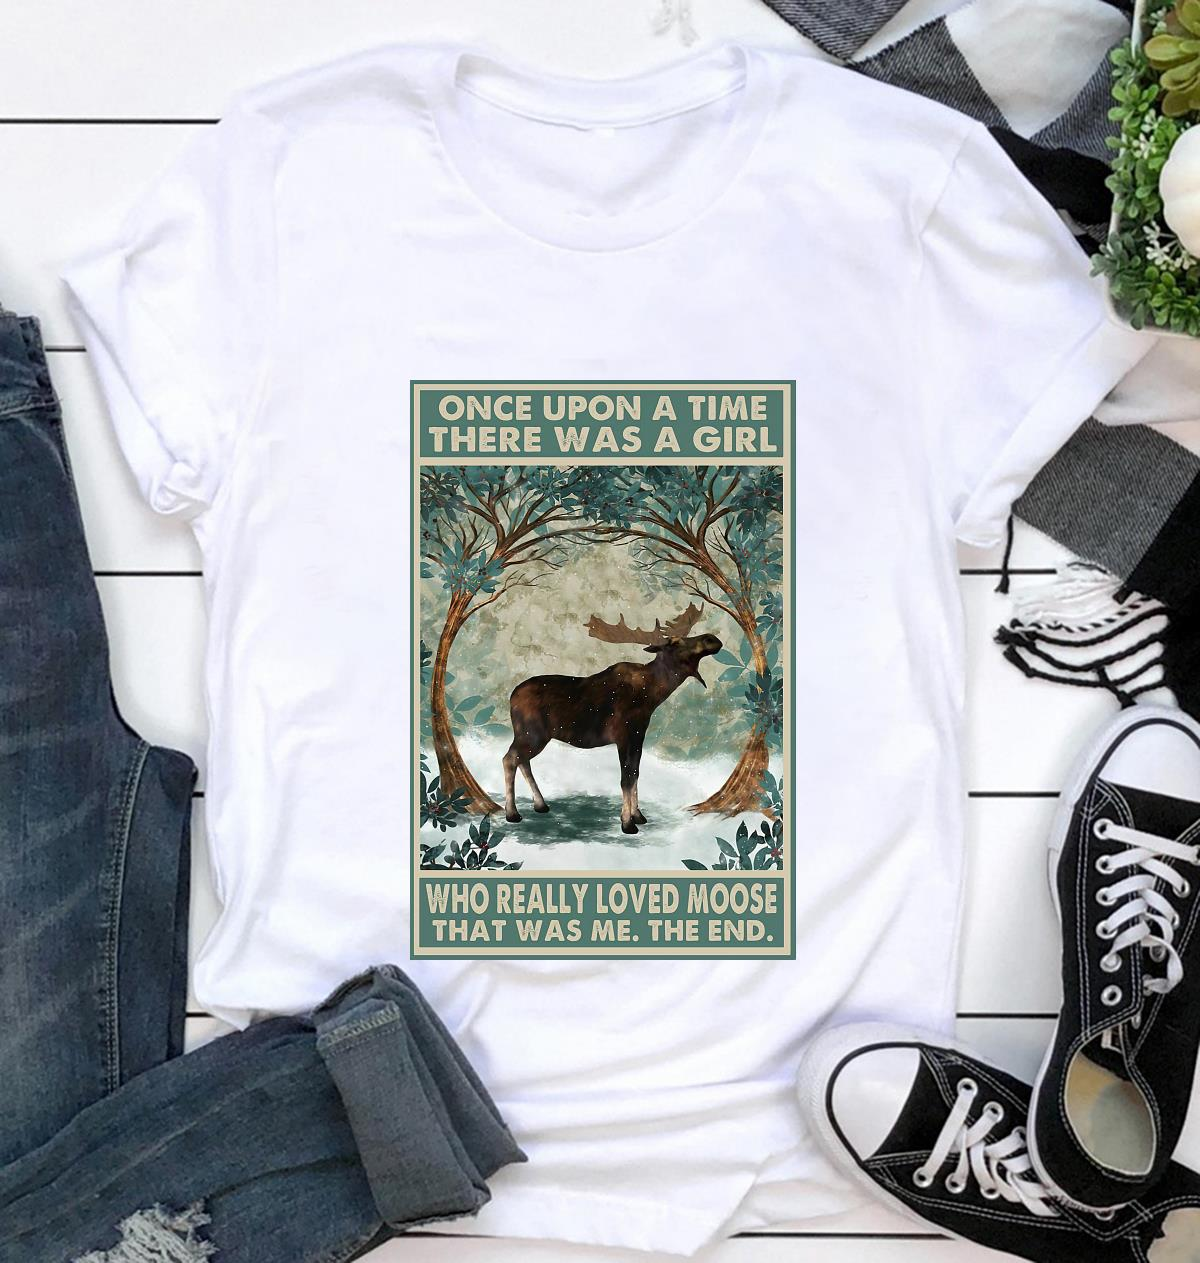 Once upon a time a girl who really loved moose poster canvas t-shirt